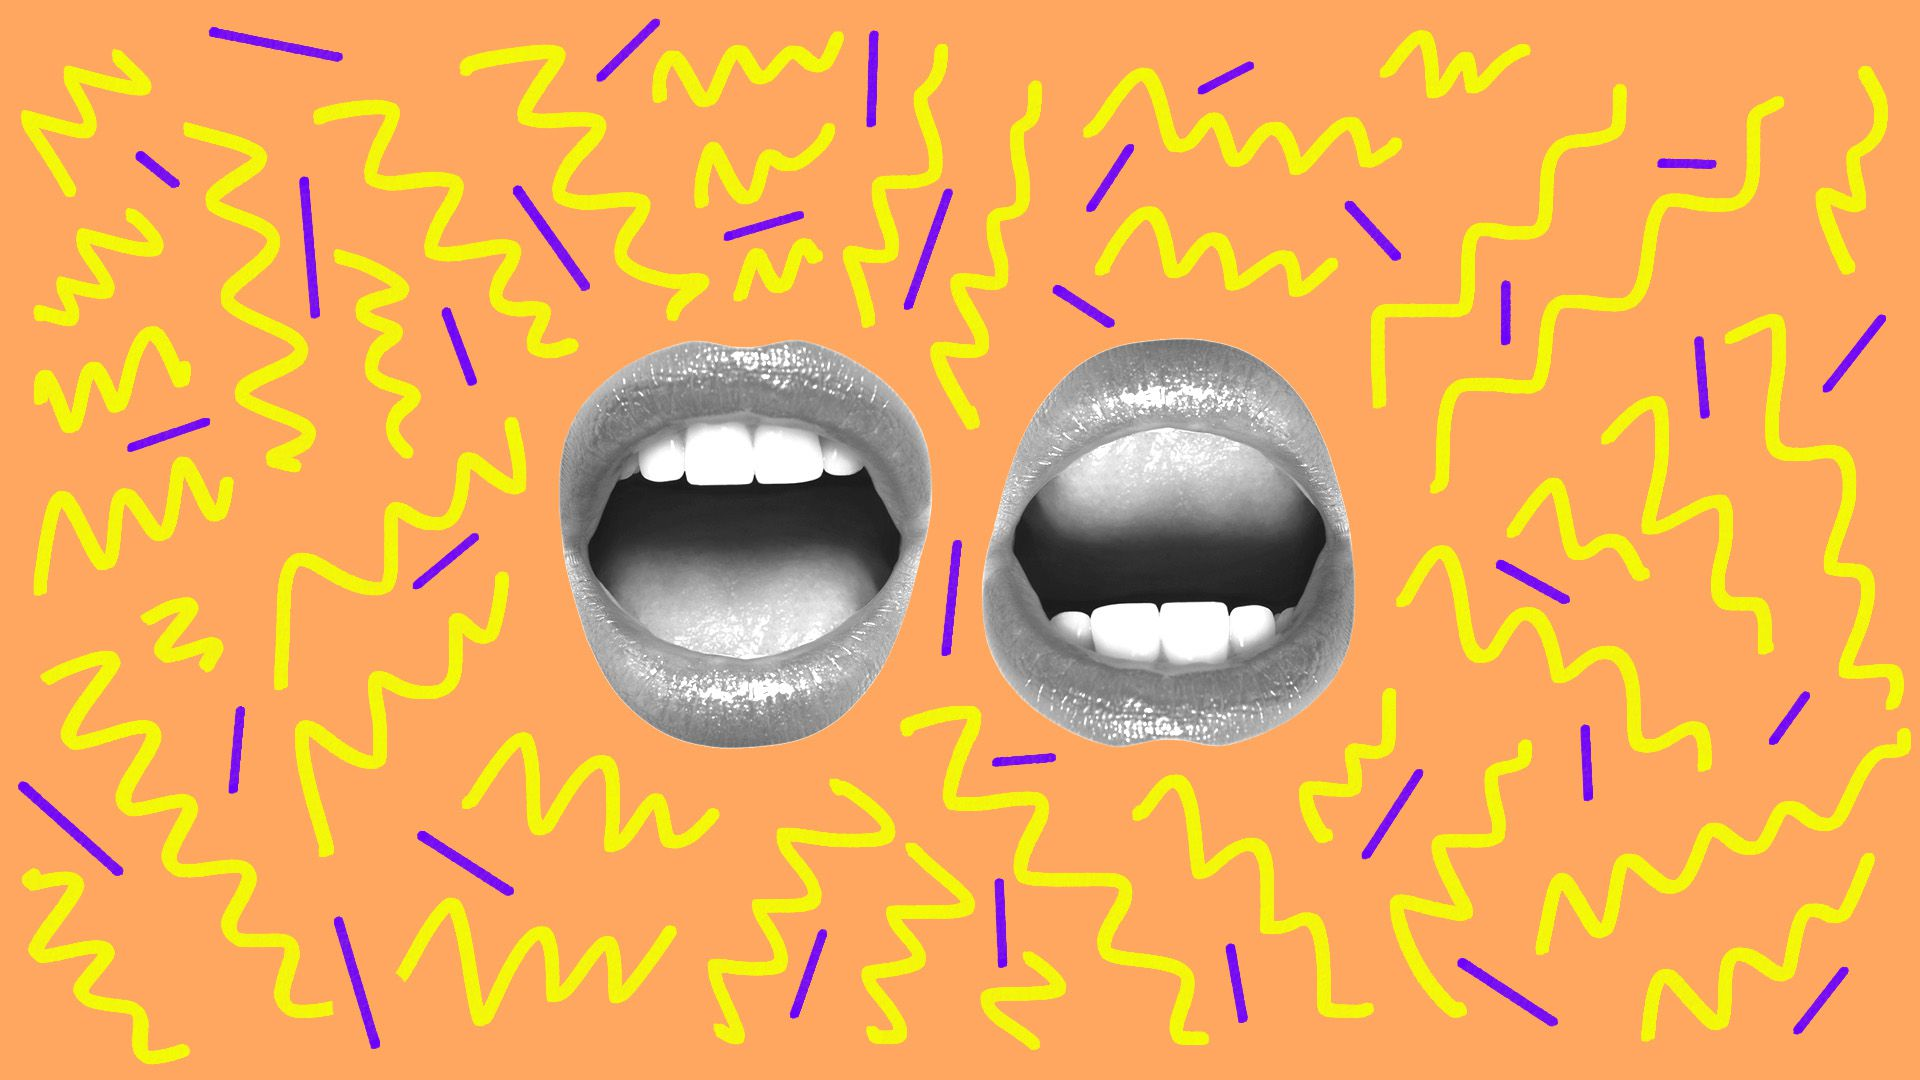 Illustration of two mouths surrounded by 90s style pattern